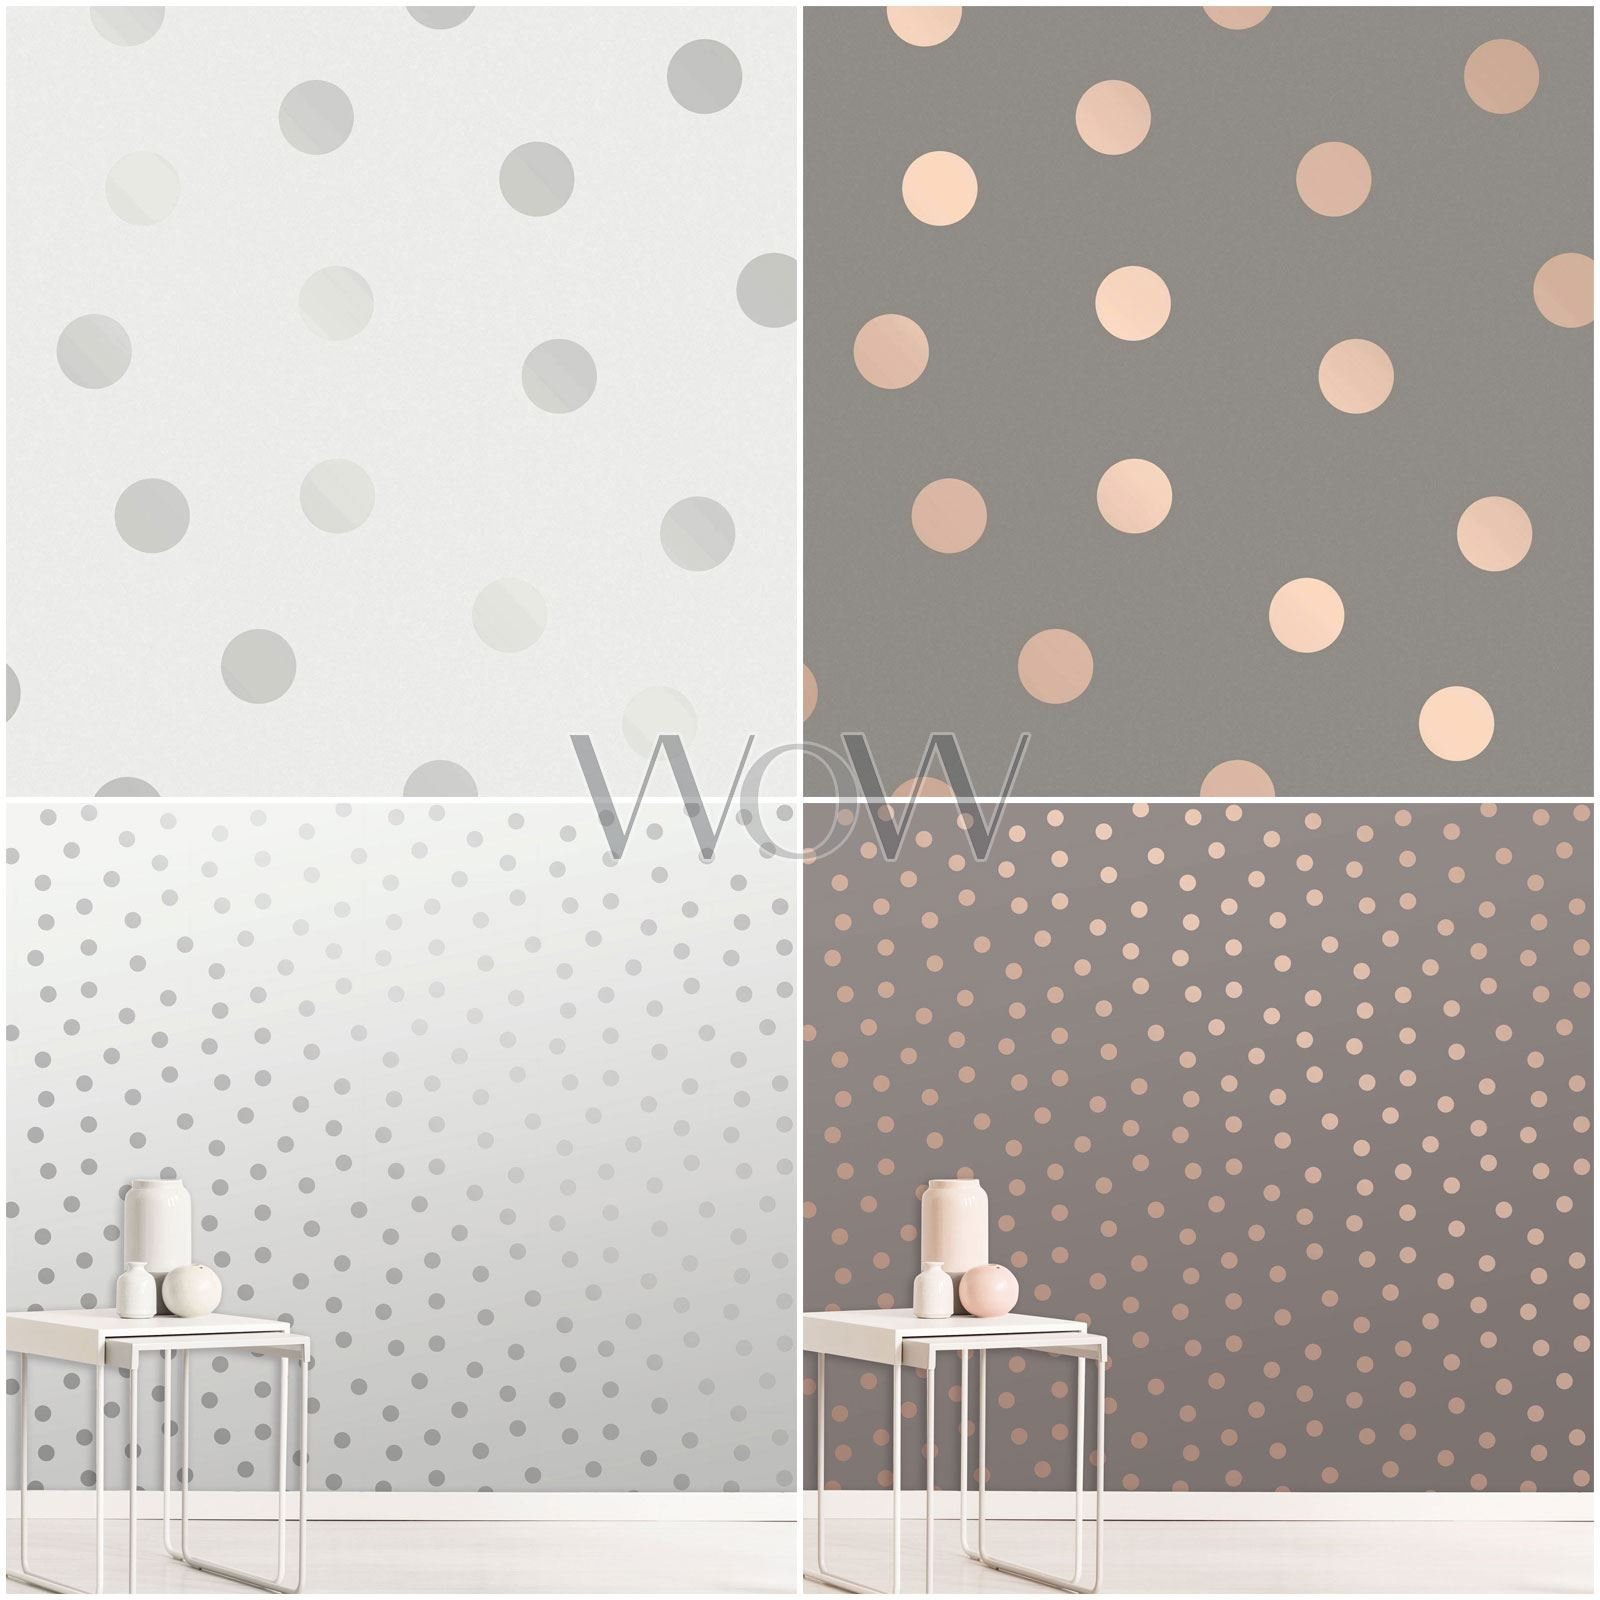 Details About Crown Starlight Spots Wallpaper Metallic Polka Dot Rose Gold Silver